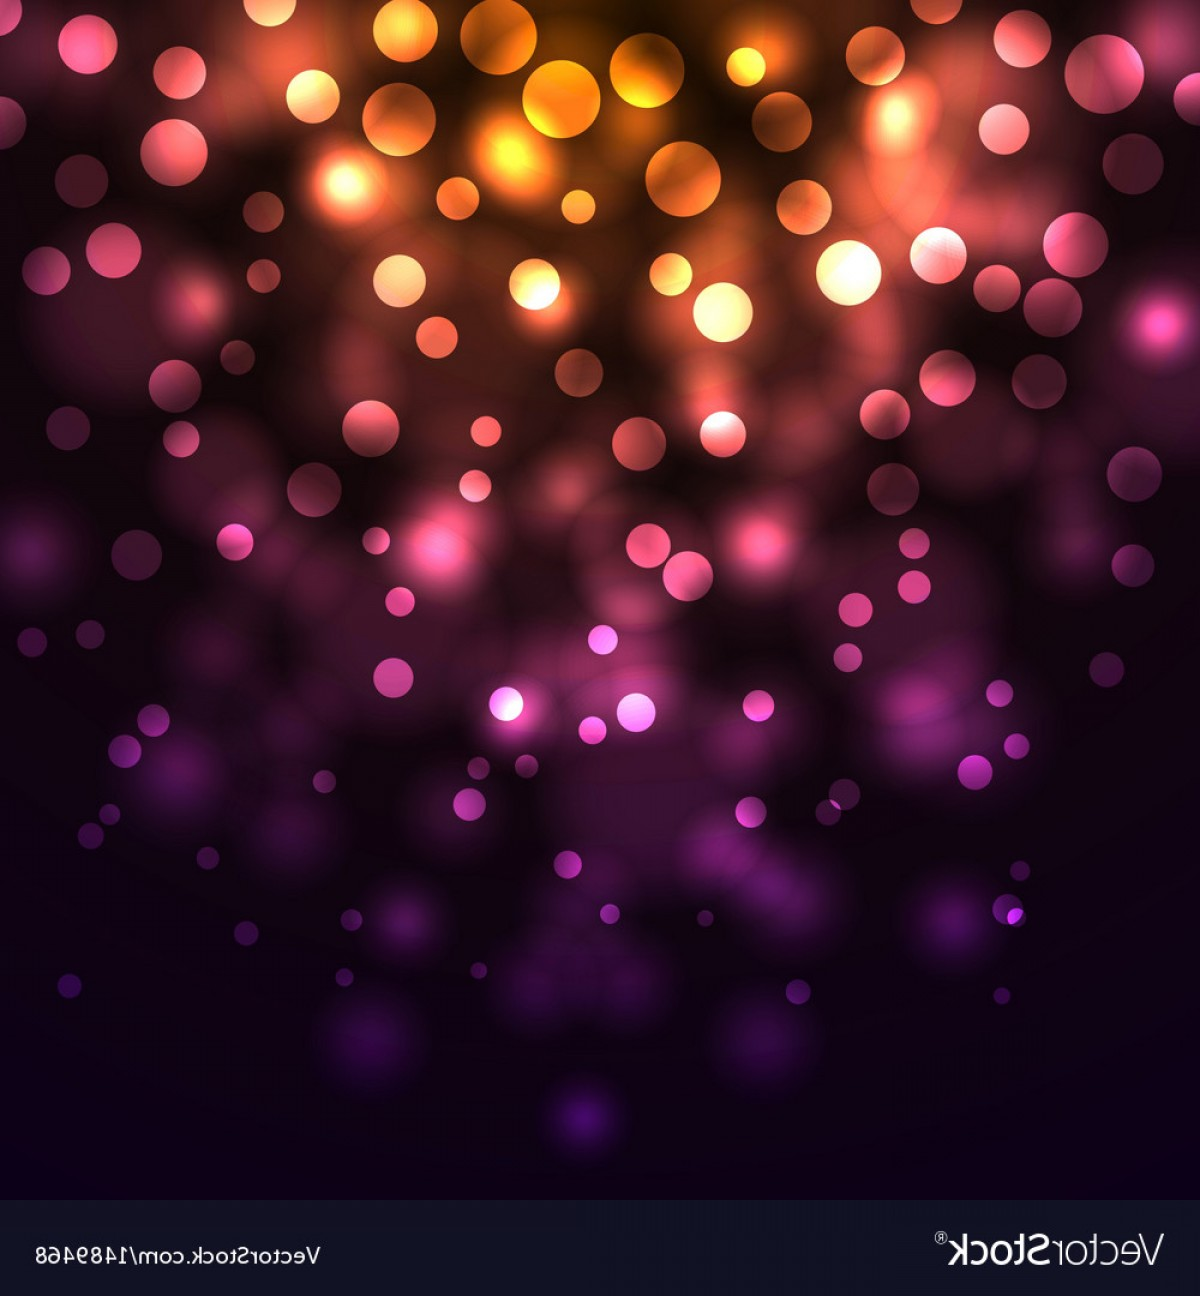 Lighting Black Background Vector: Abstract Falling Lights Dark Background Vector